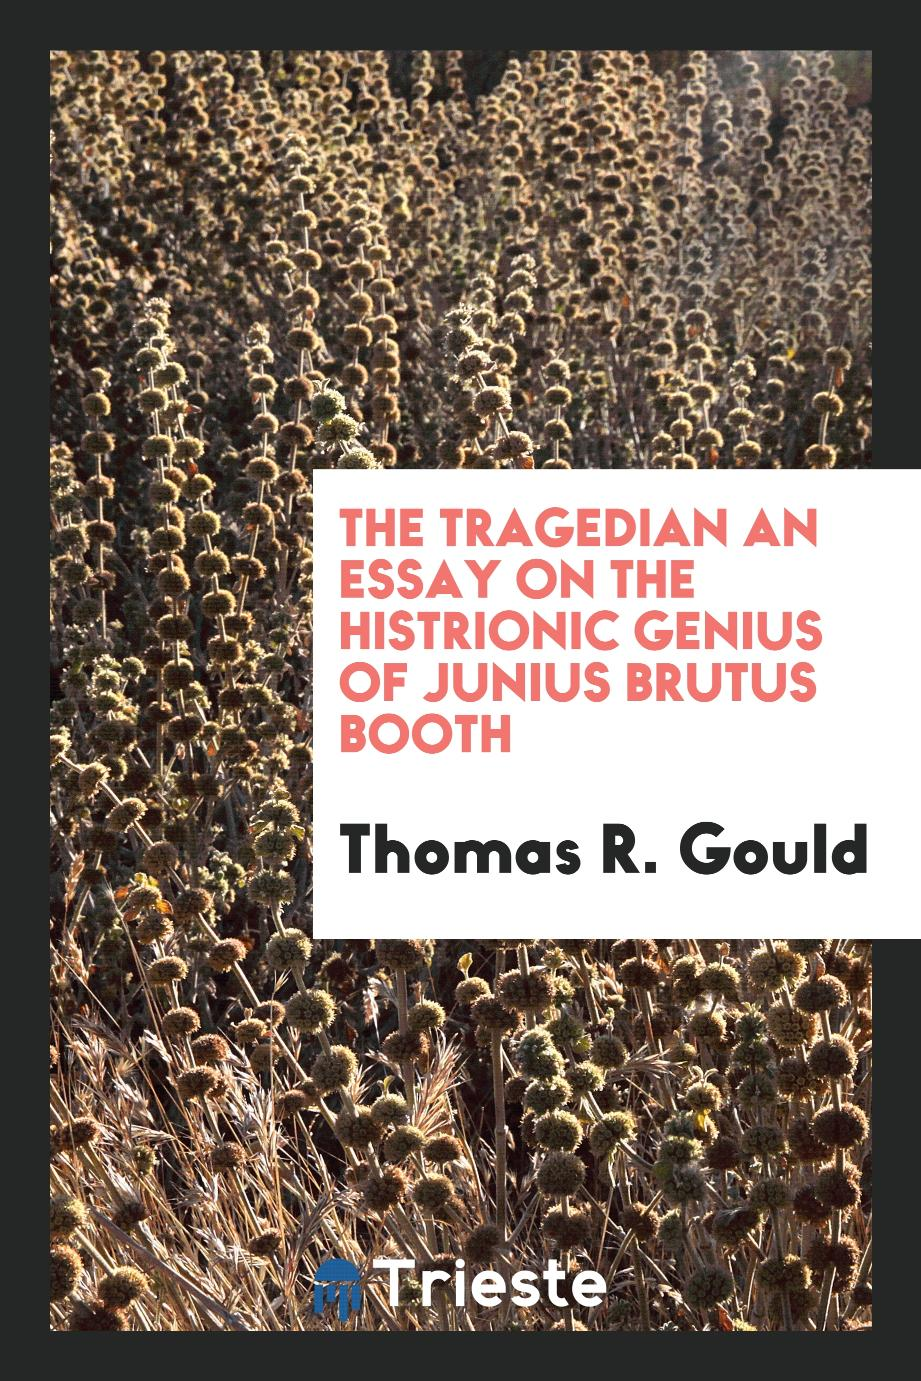 The tragedian an essay on the histrionic genius of Junius Brutus Booth